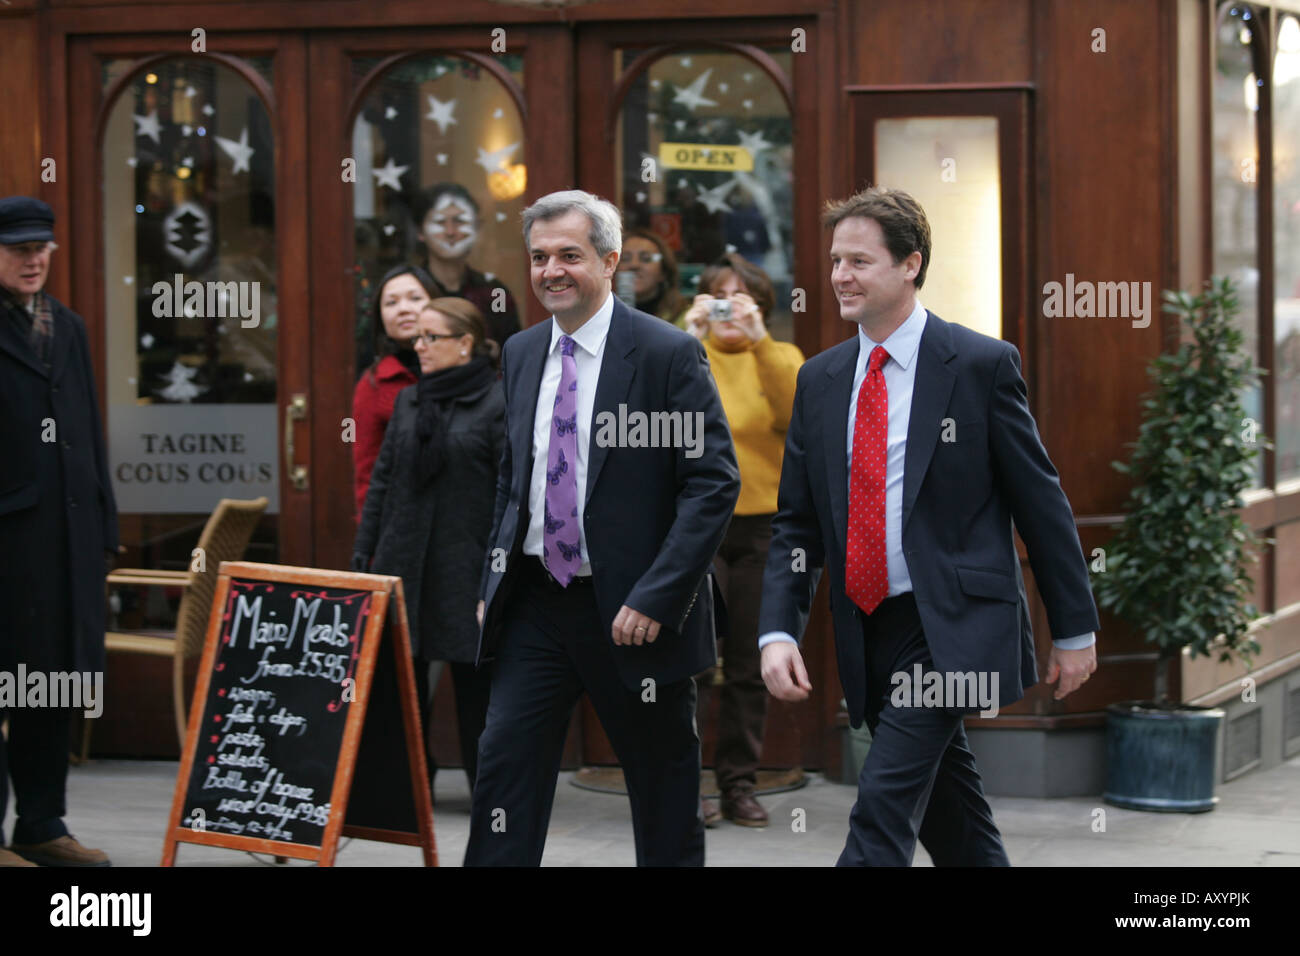 Nick Clegg and Chris Huhne arrive for the announcement of who has won the contest to become new leader of the Liberal - Stock Image